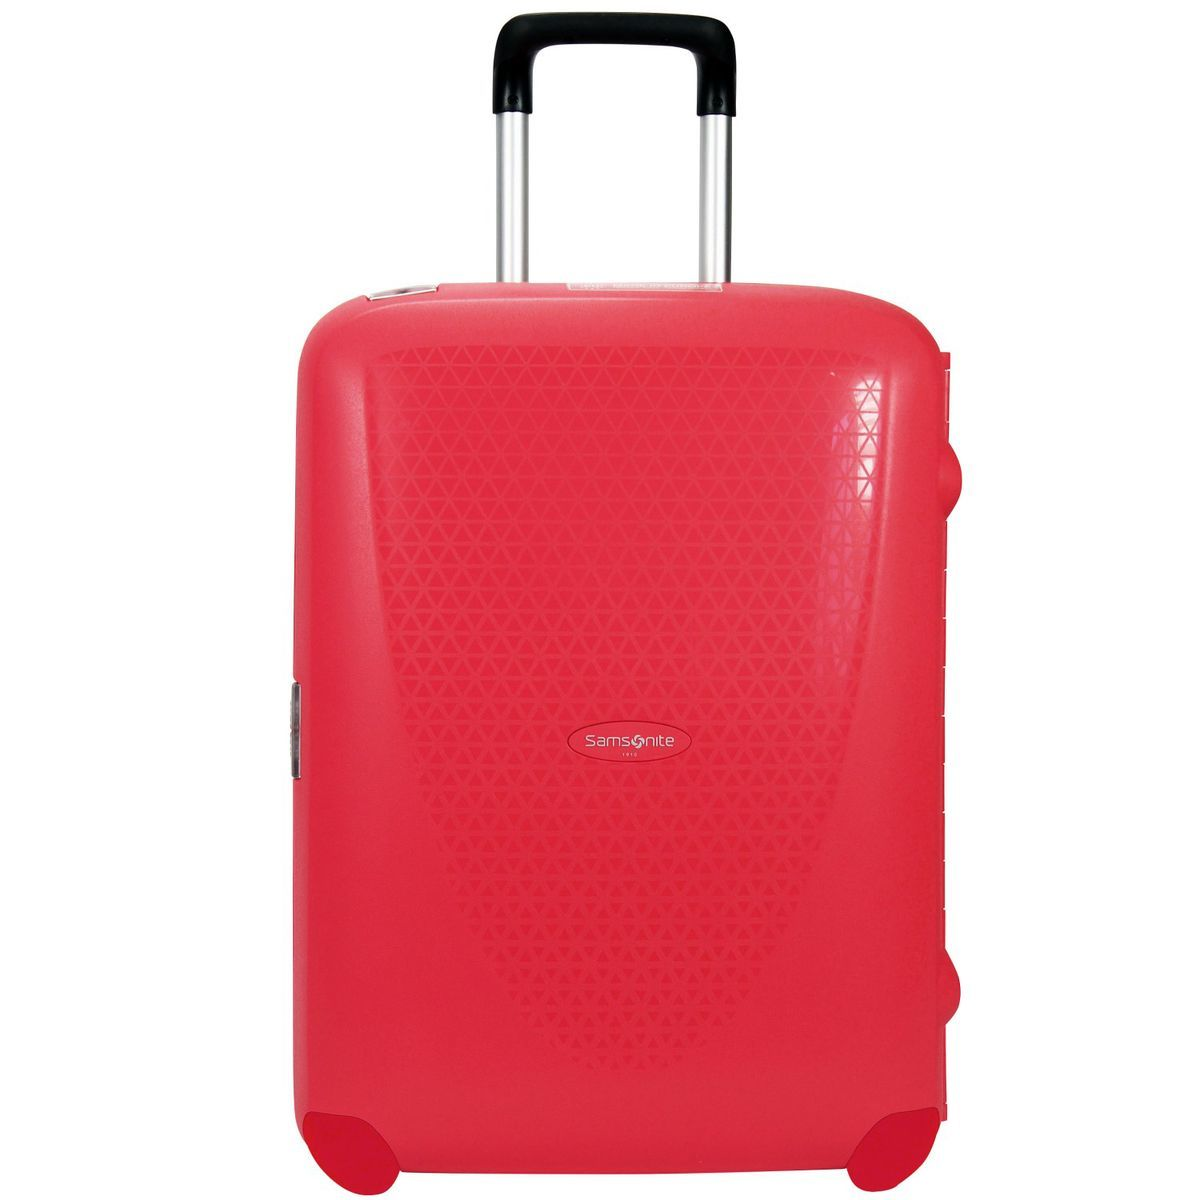 Samsonite Termo Young Upright 2-Rollen Trolley 75 cm, vivid red